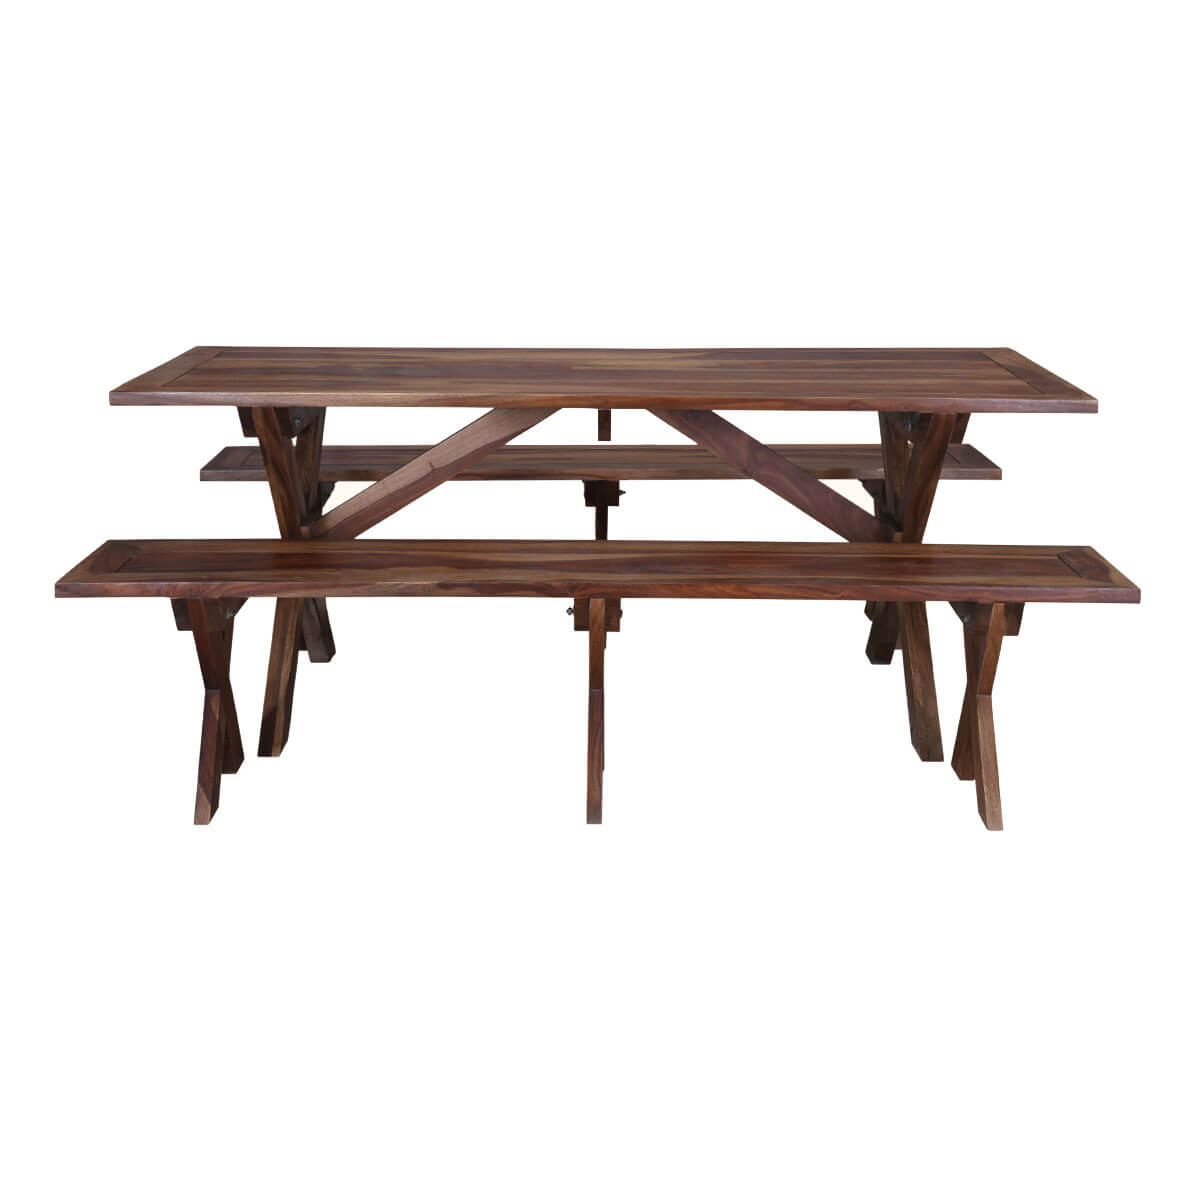 traditional american picnic style rustic dining table with bench. Black Bedroom Furniture Sets. Home Design Ideas